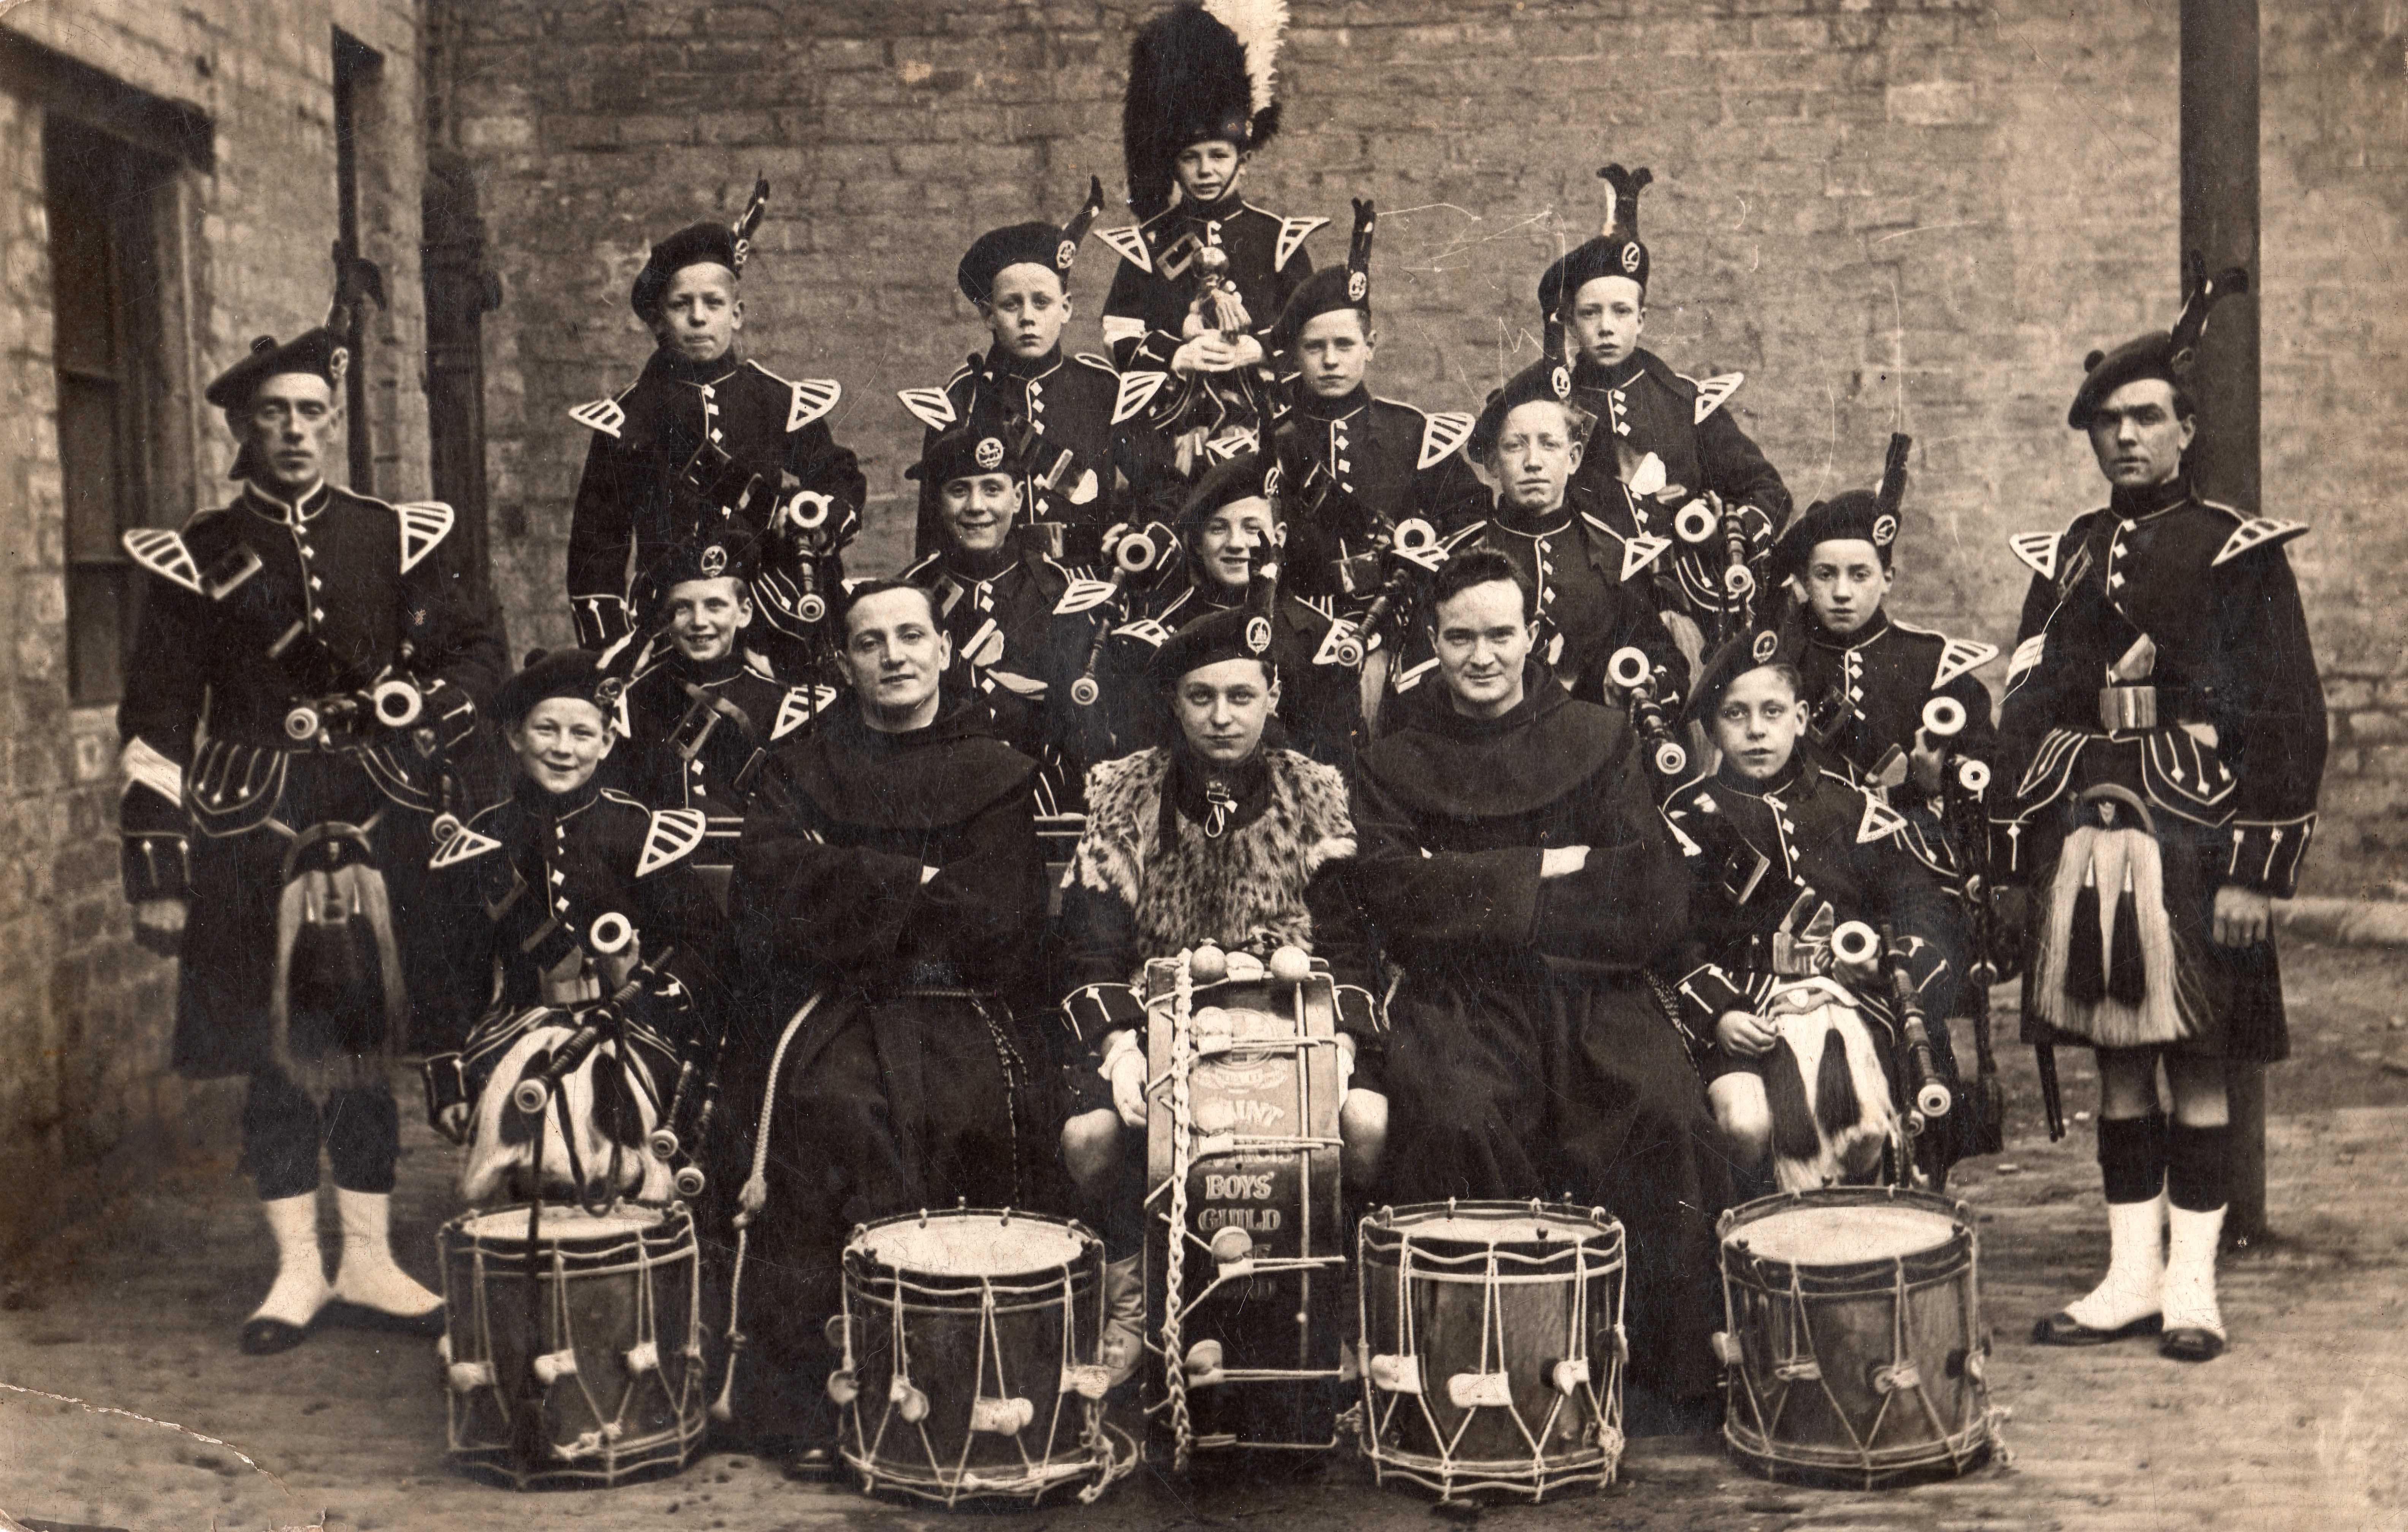 St Francis Pipe Band Mid 1920s